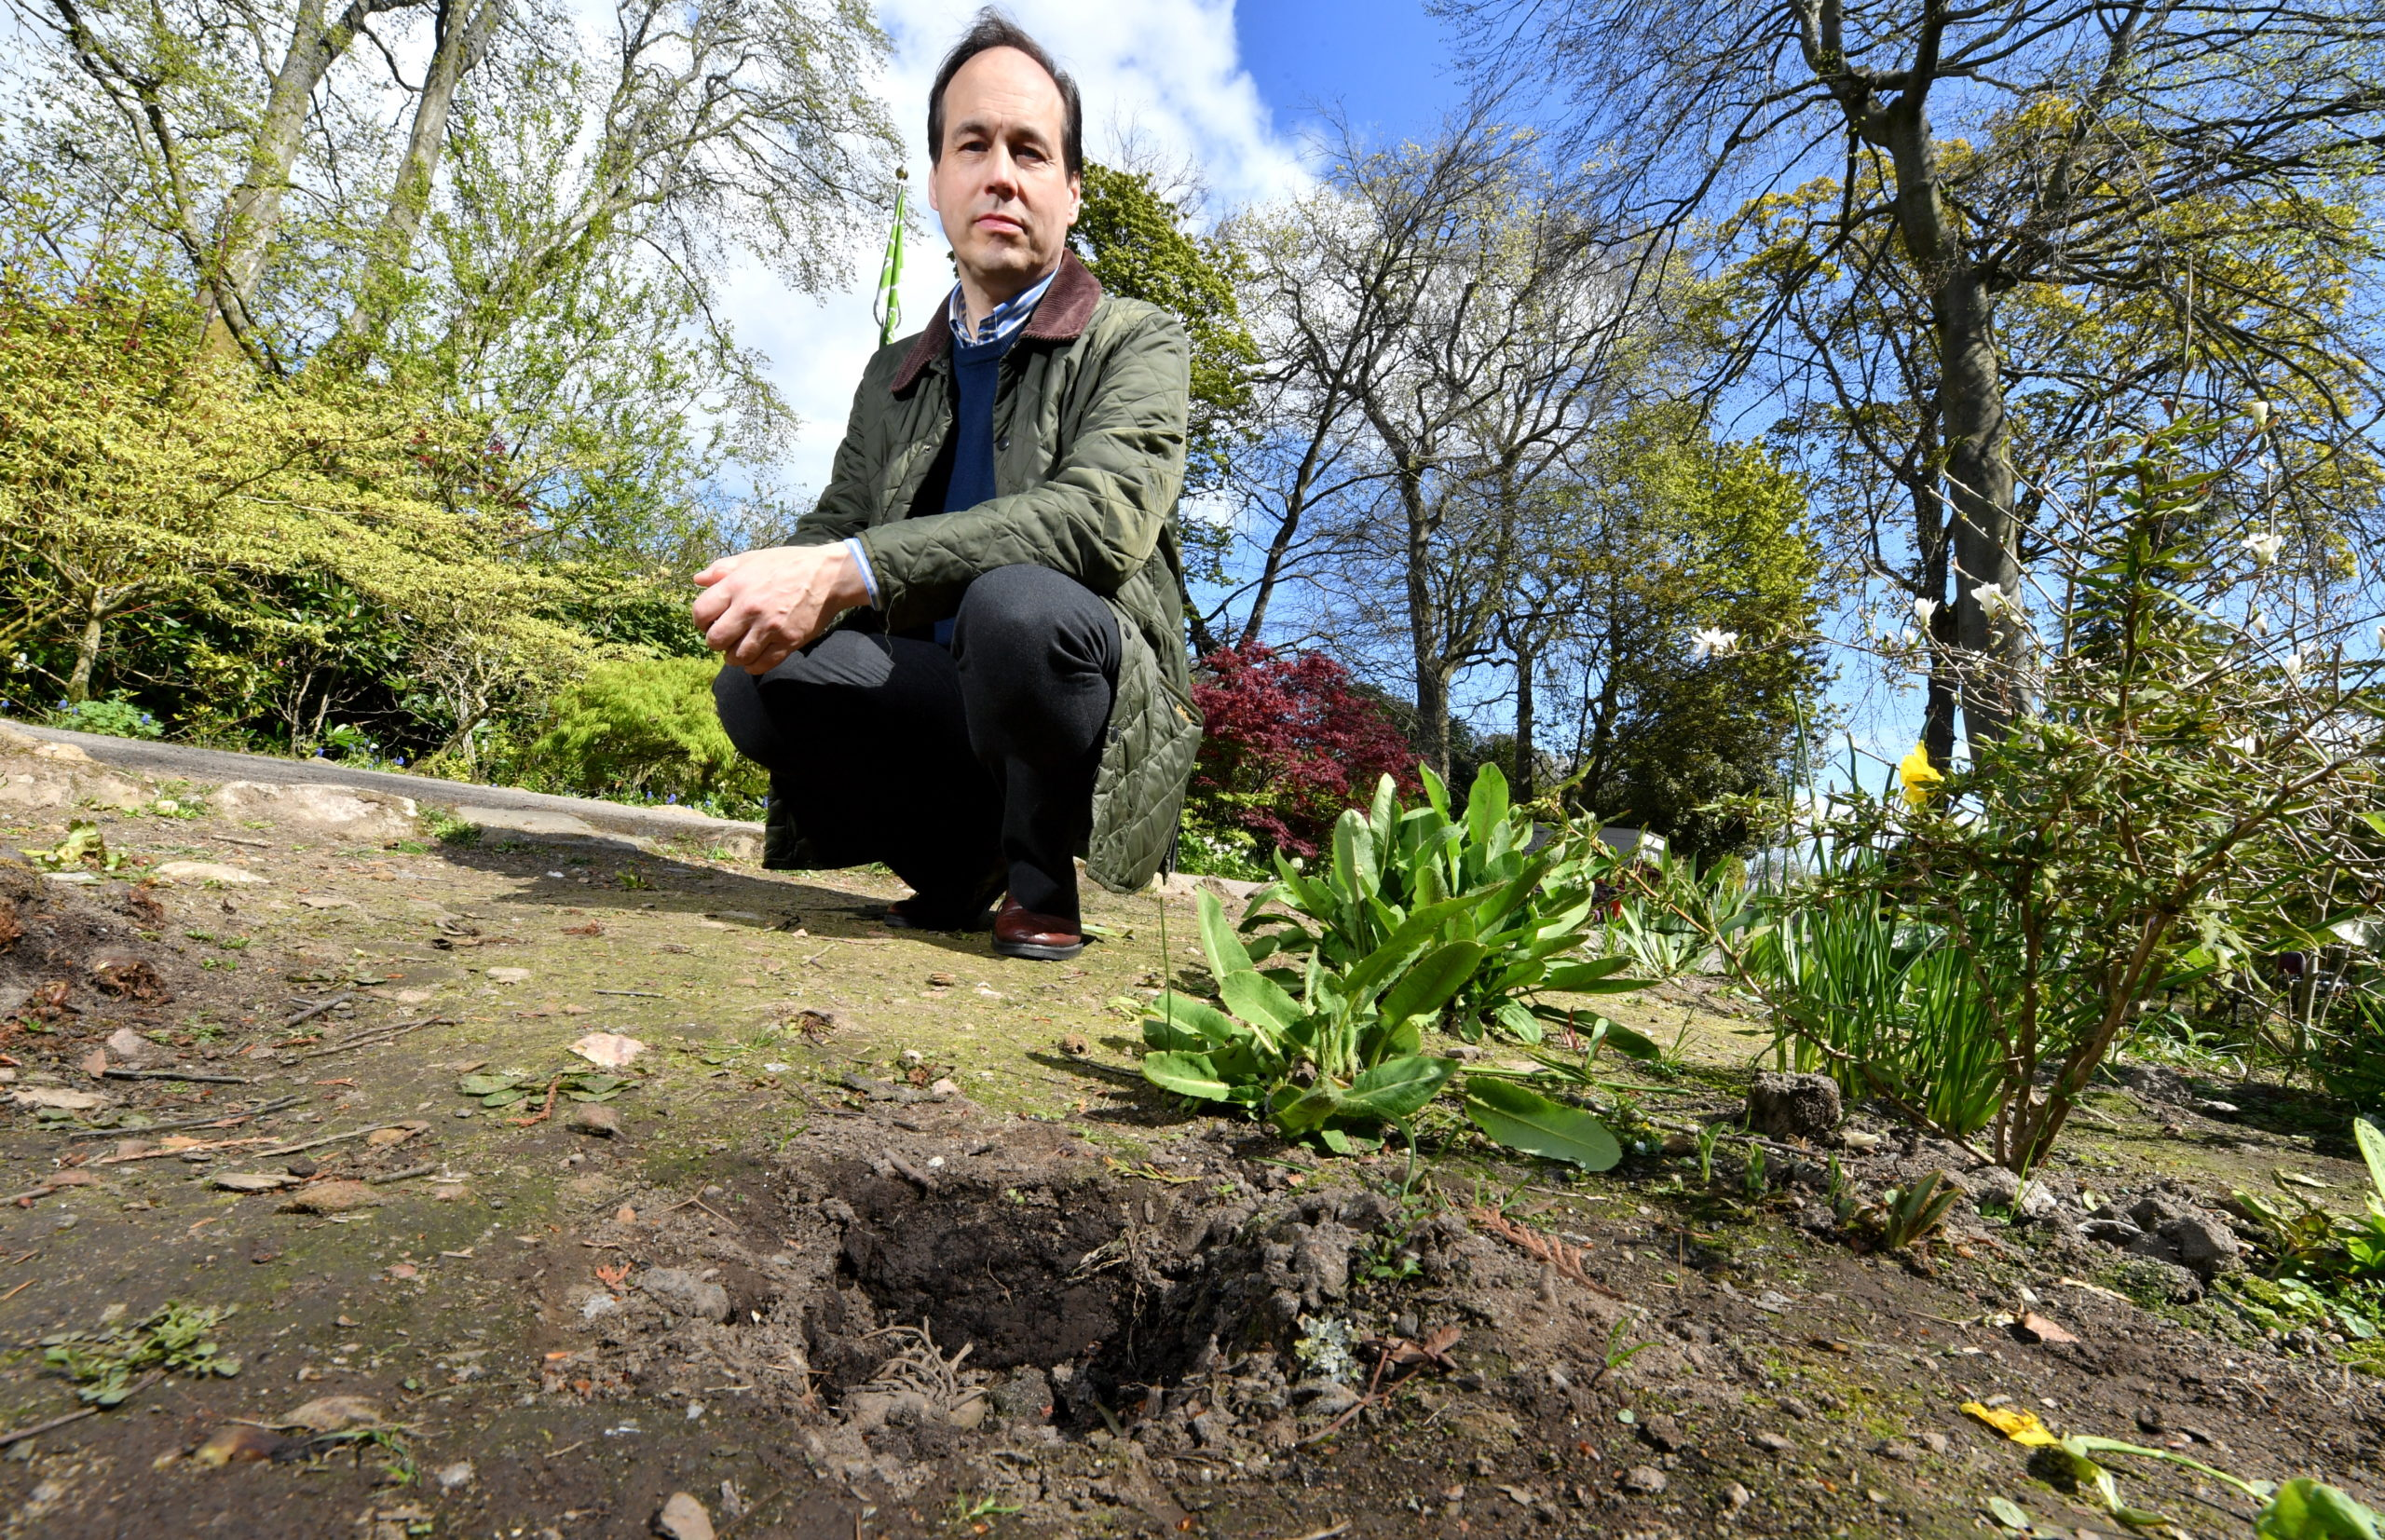 Martin Greig has hit out over the theft of plants from Johnston Gardens.